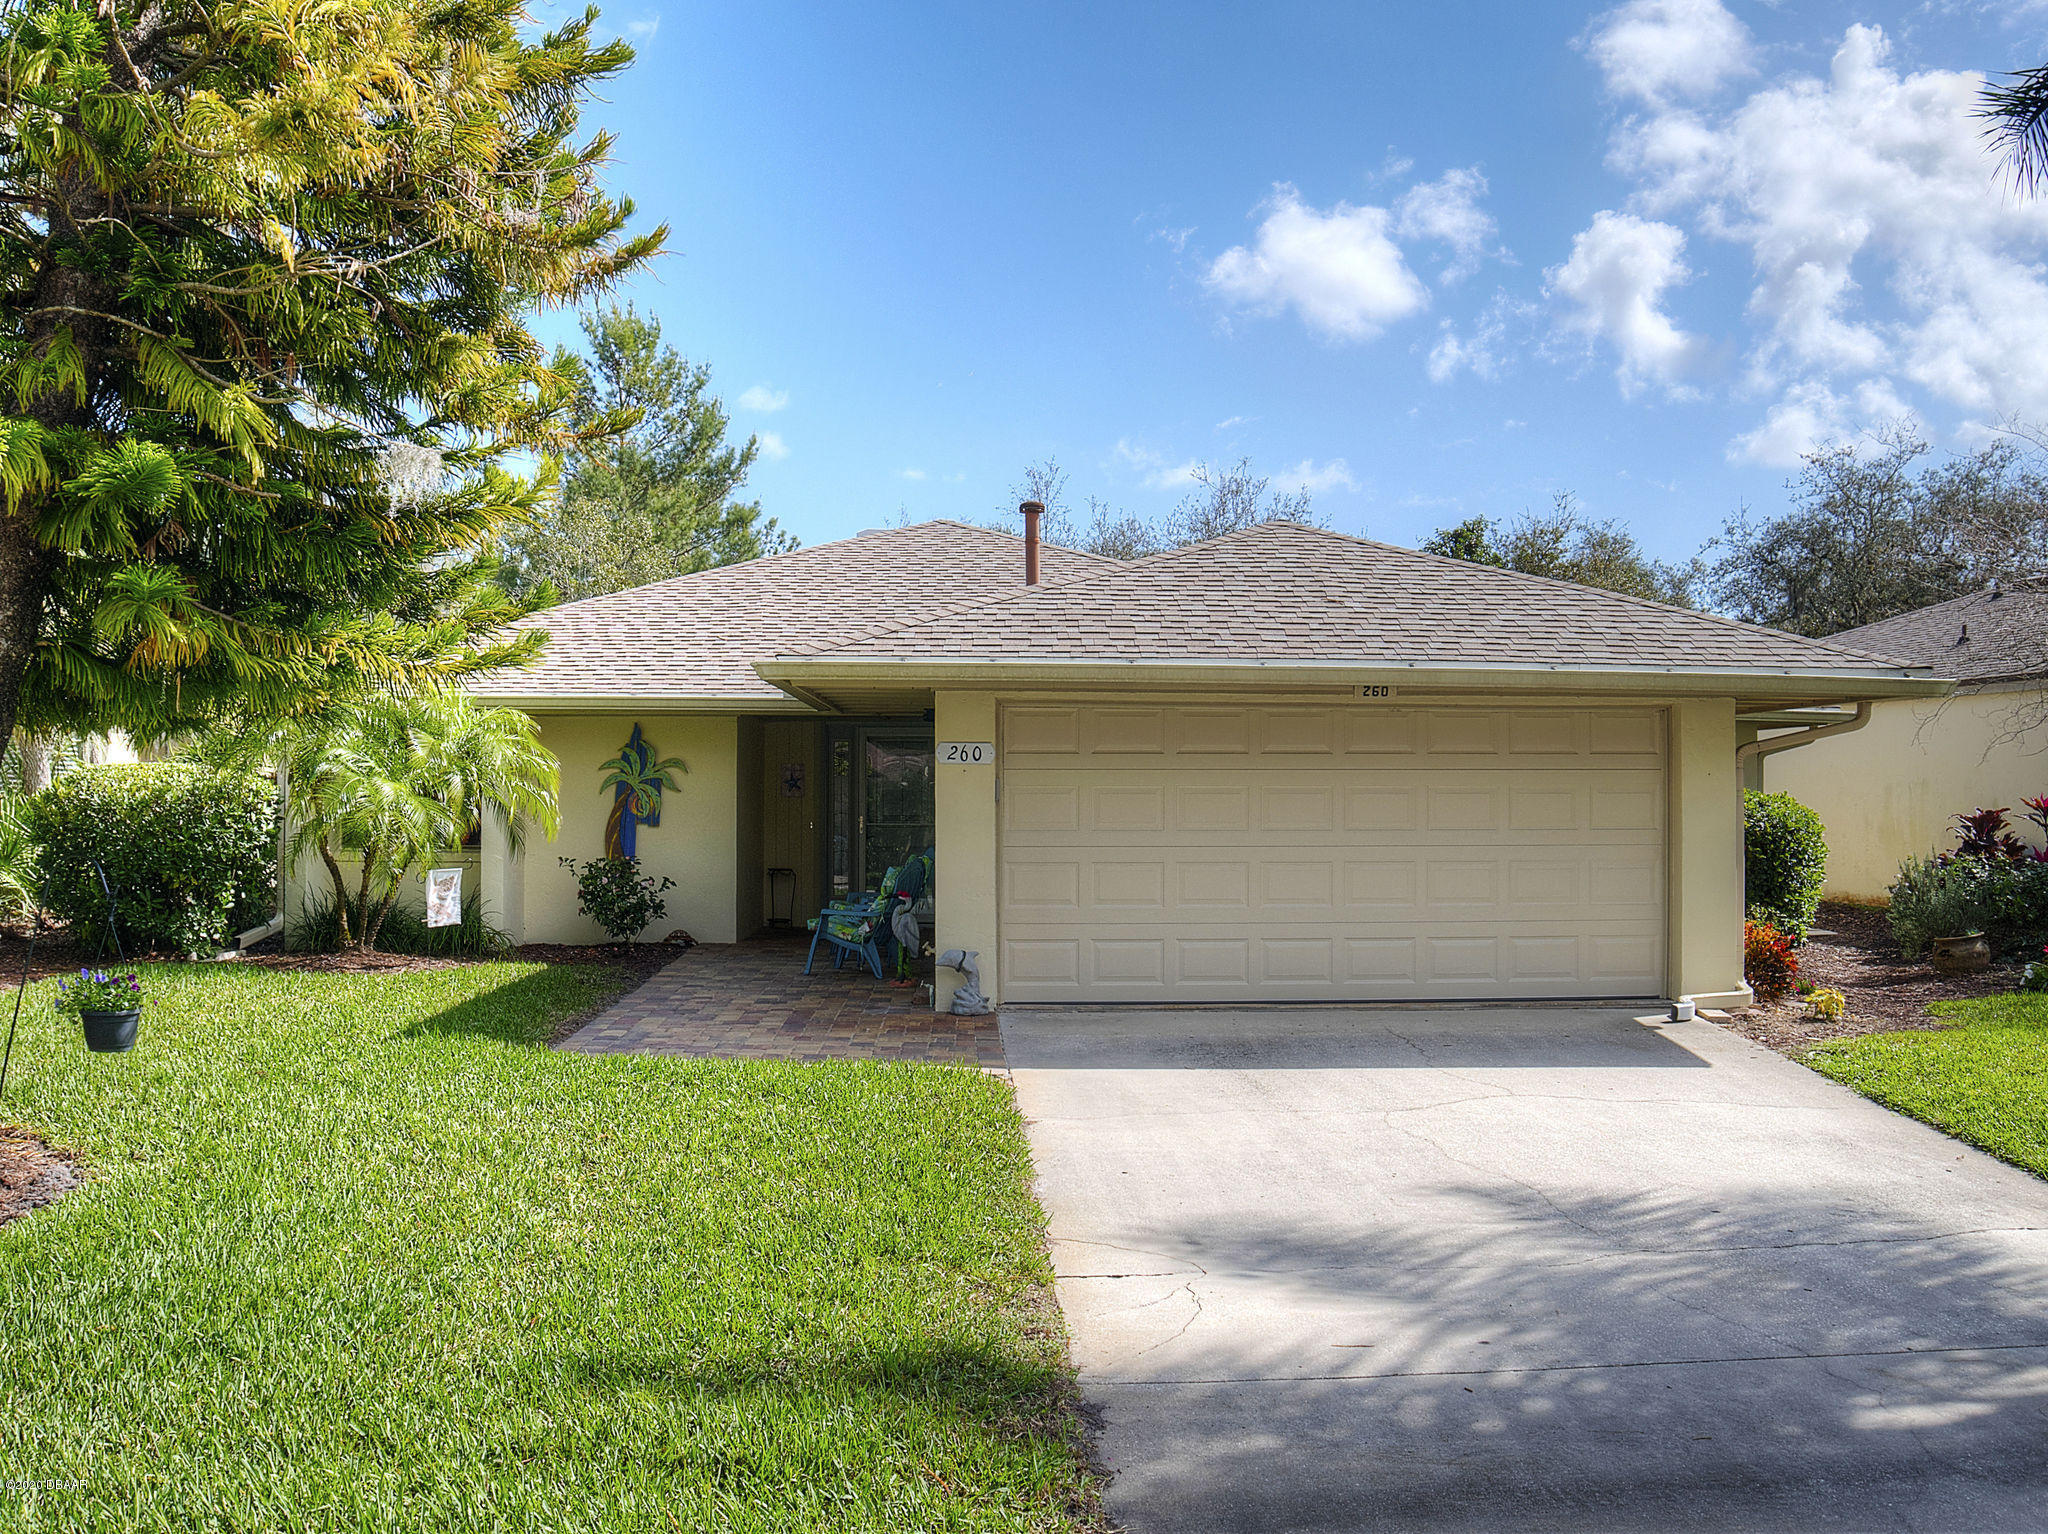 Photo of 260 Canterbury Circle, New Smyrna Beach, FL 32168